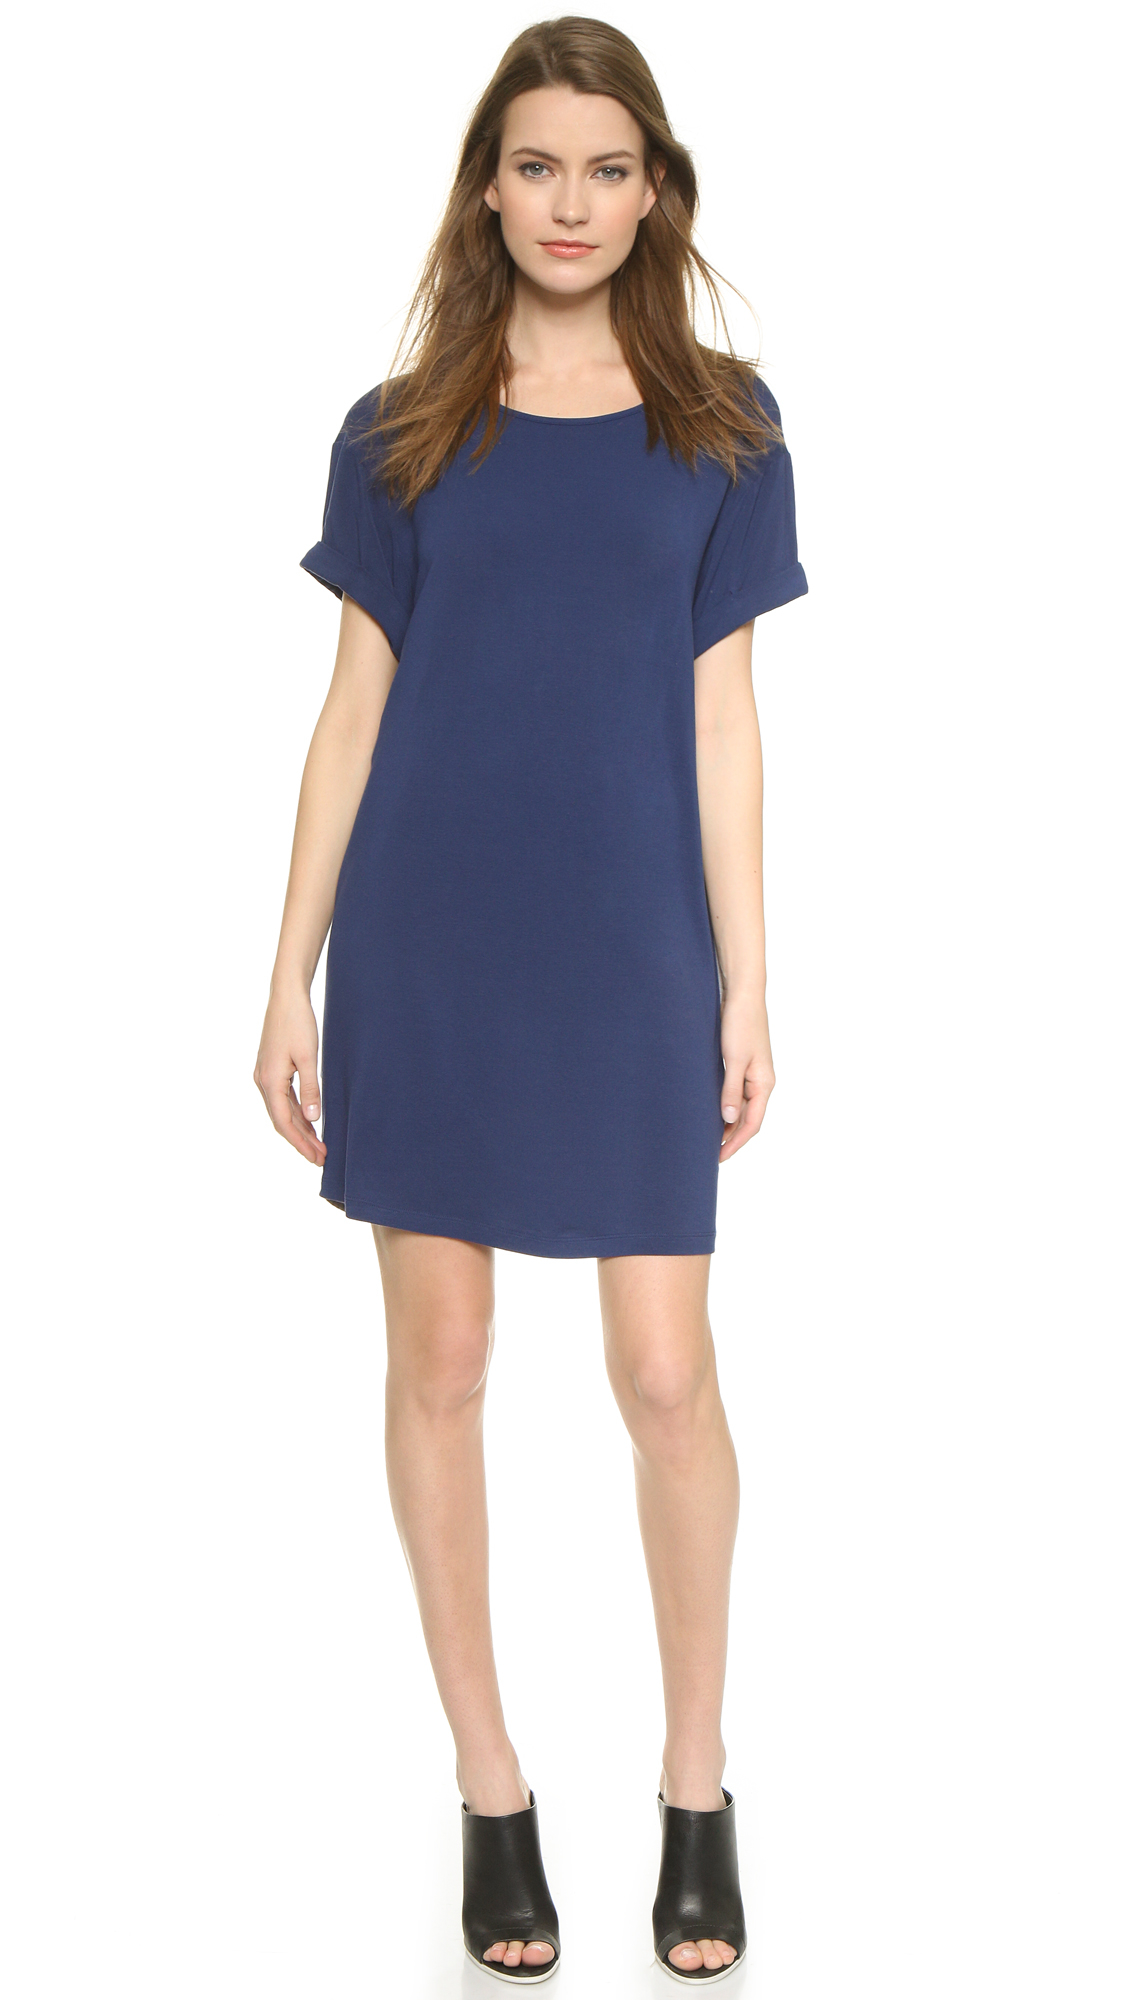 Lyst vince chambray back dress dark indigo combo in blue for Chambray dress